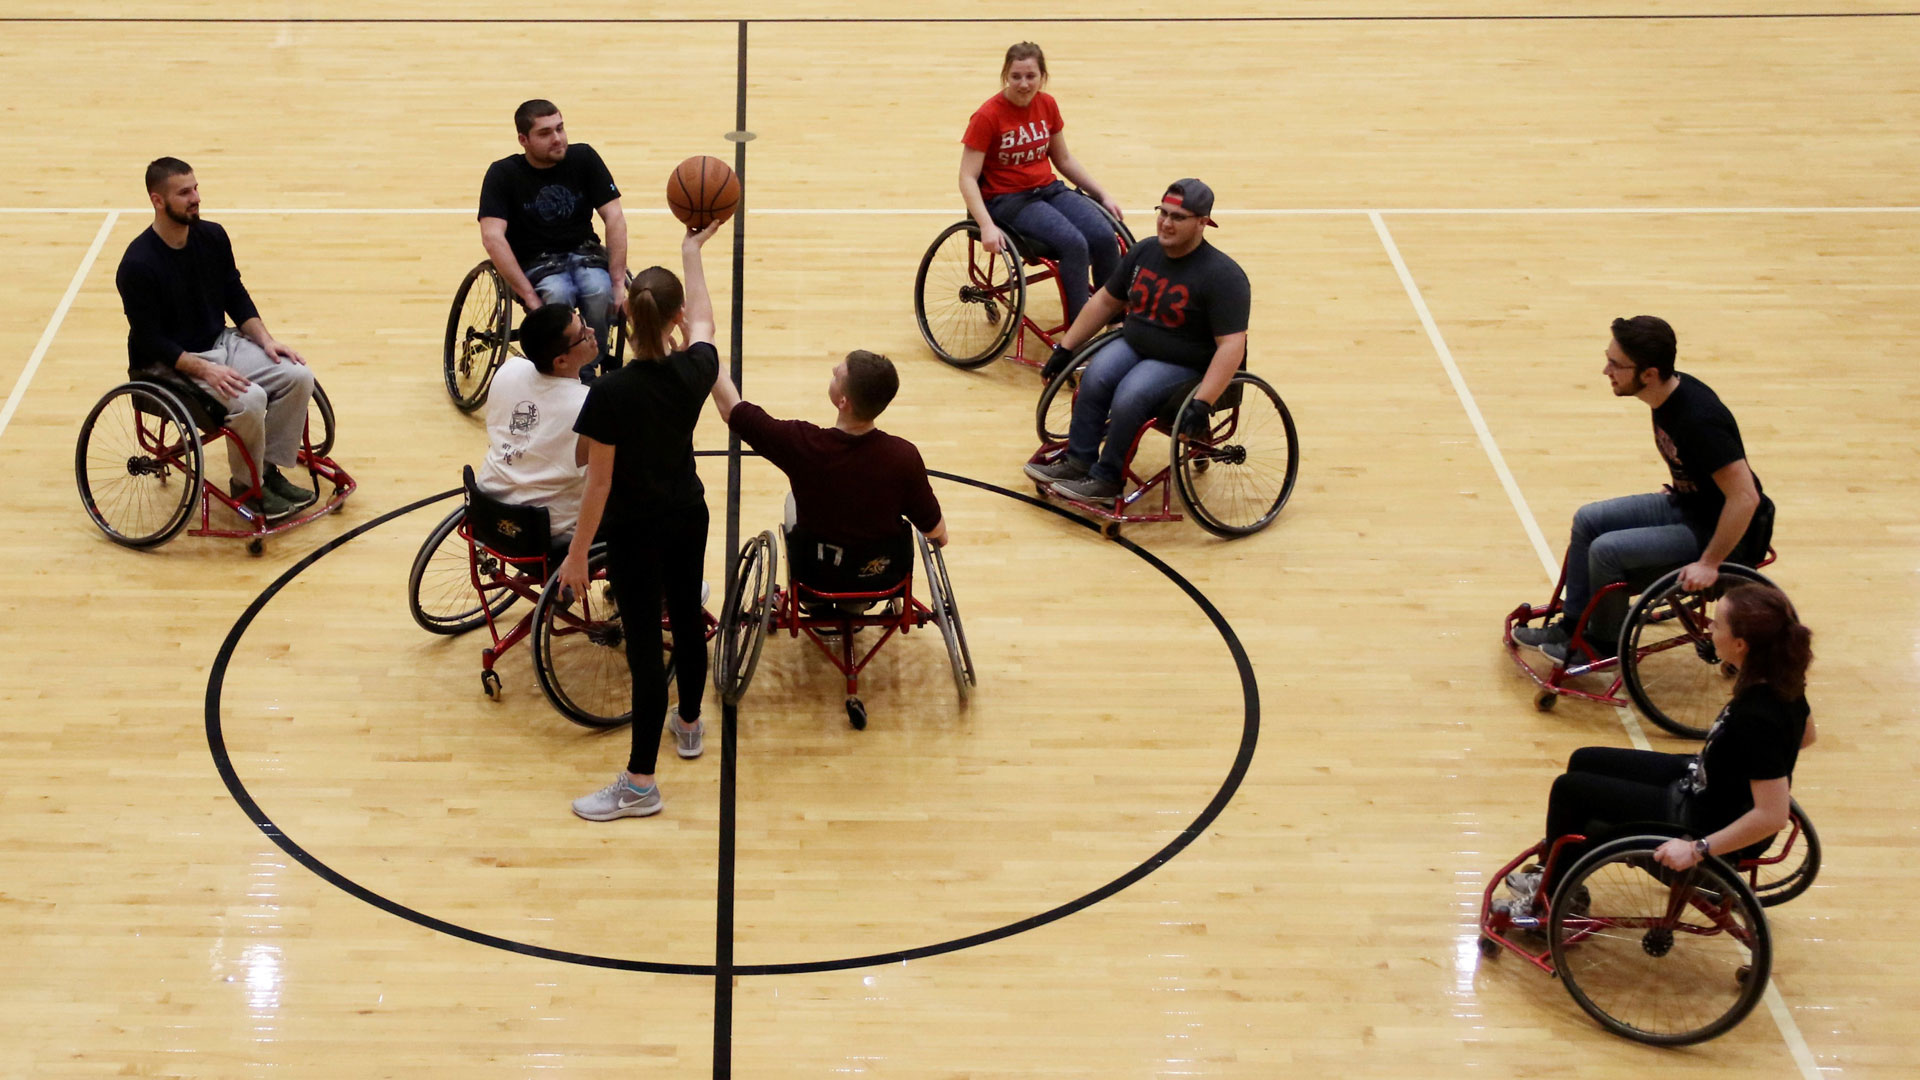 Students play basketball in wheelchairs